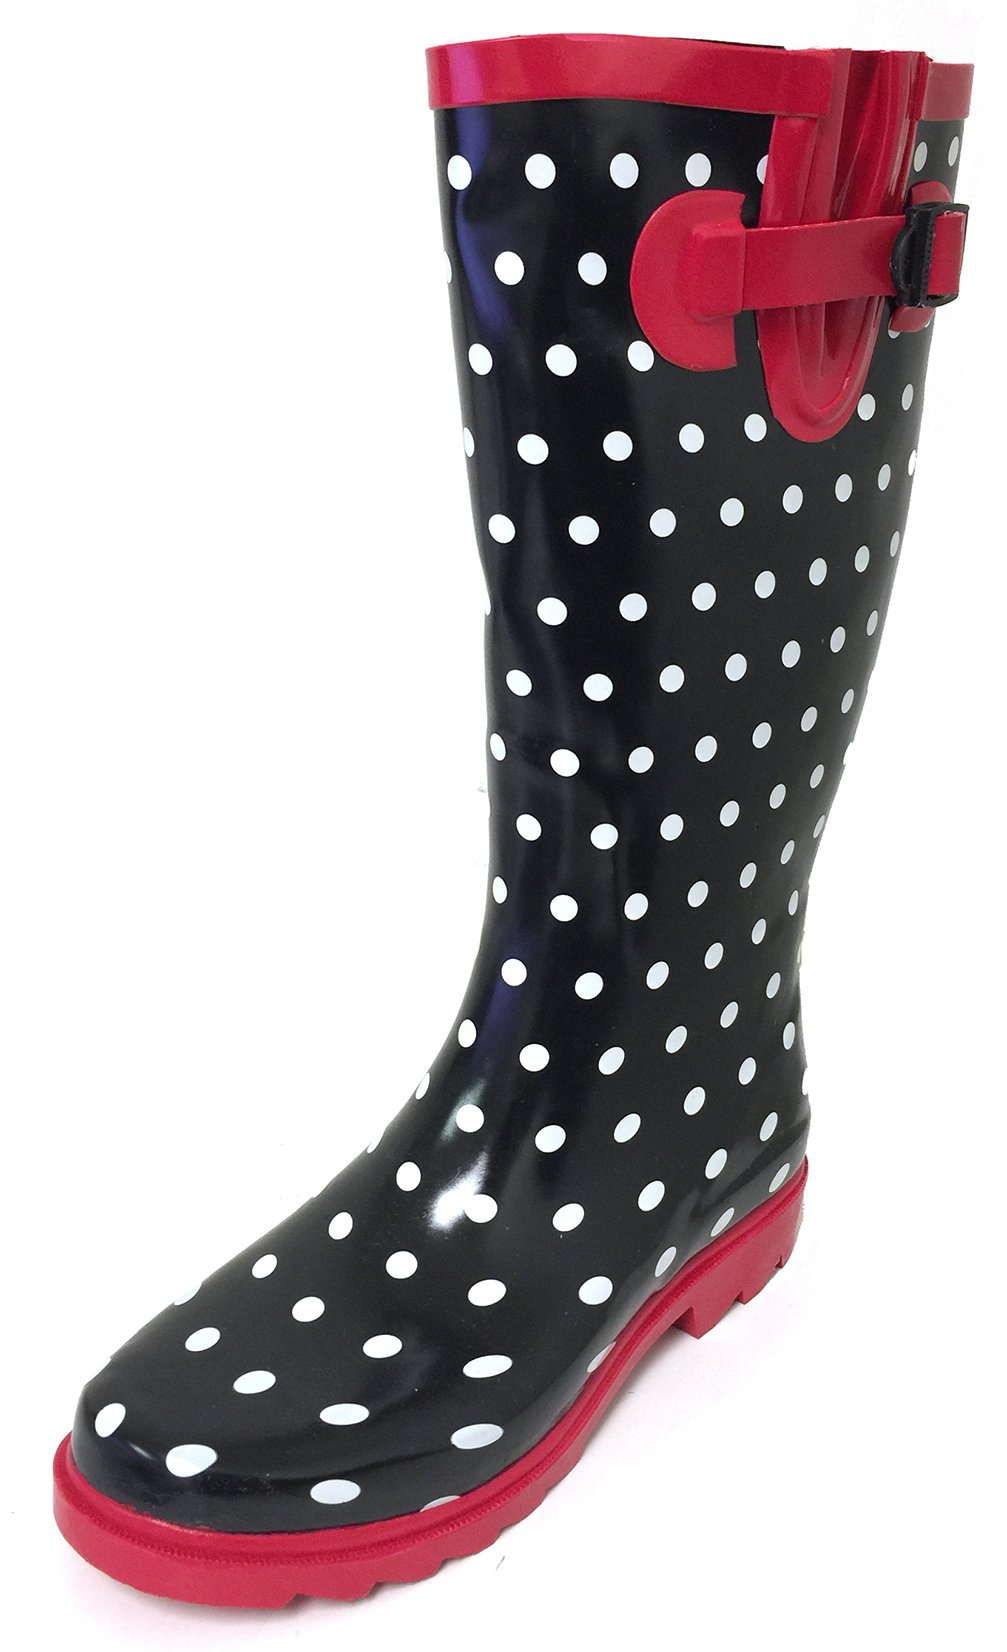 G4U Women's Rain Boots Multiple Styles Color Mid Calf Wellies Buckle Fashion Rubber Knee High Snow Shoes (5 B(M) US, Black/Red Polka Dots)